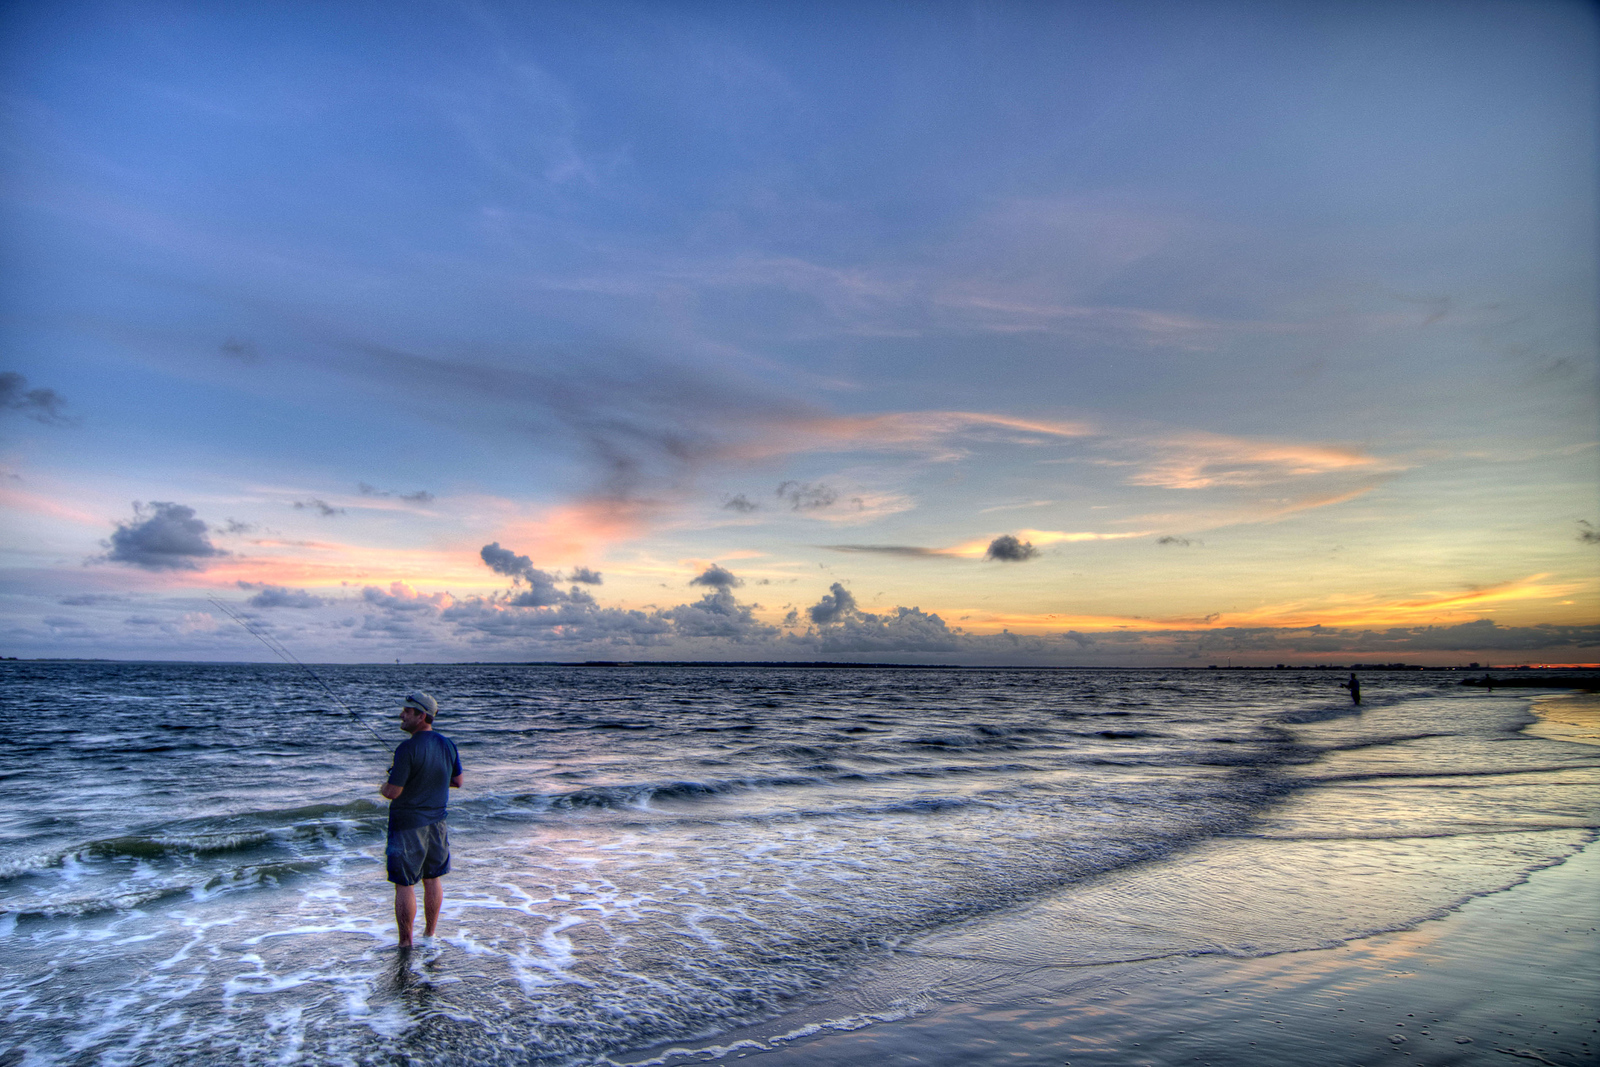 A man fishes in the ocean during sunset at Sullivans Island, SC on Friday, July 19, 2013. Copyright 2013 Jason Barnette